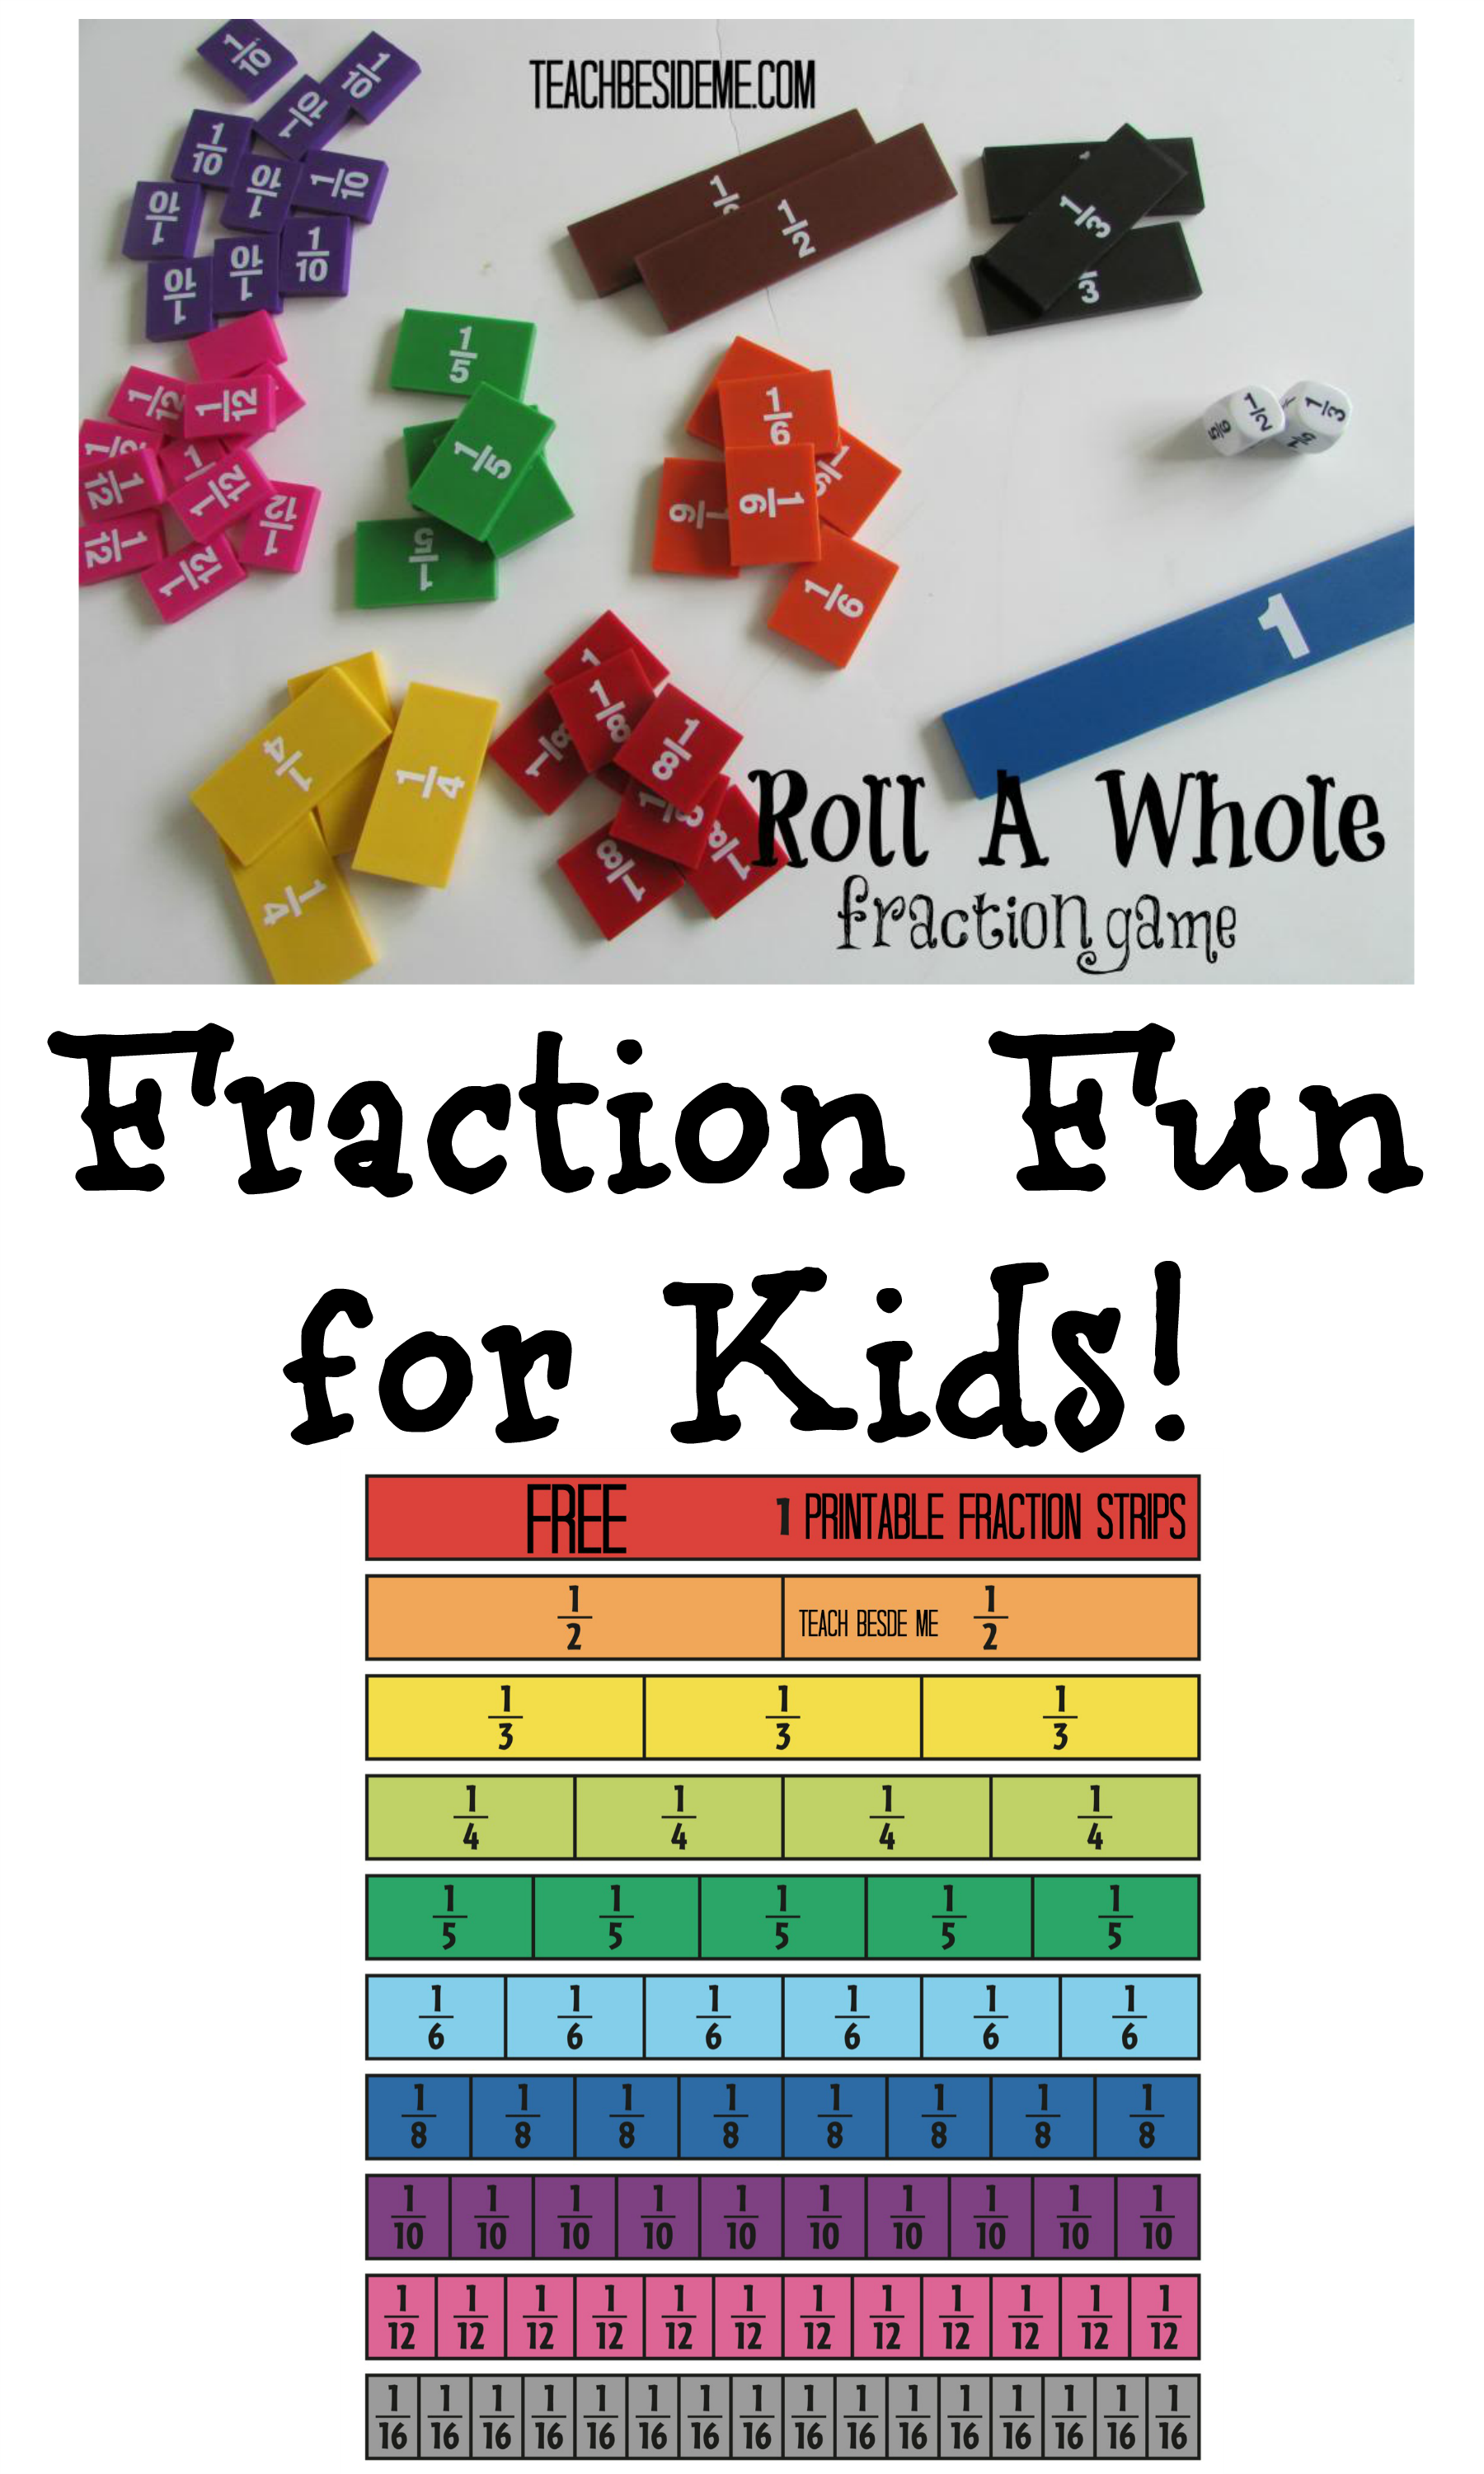 Roll a Whole -Fractions Math Game